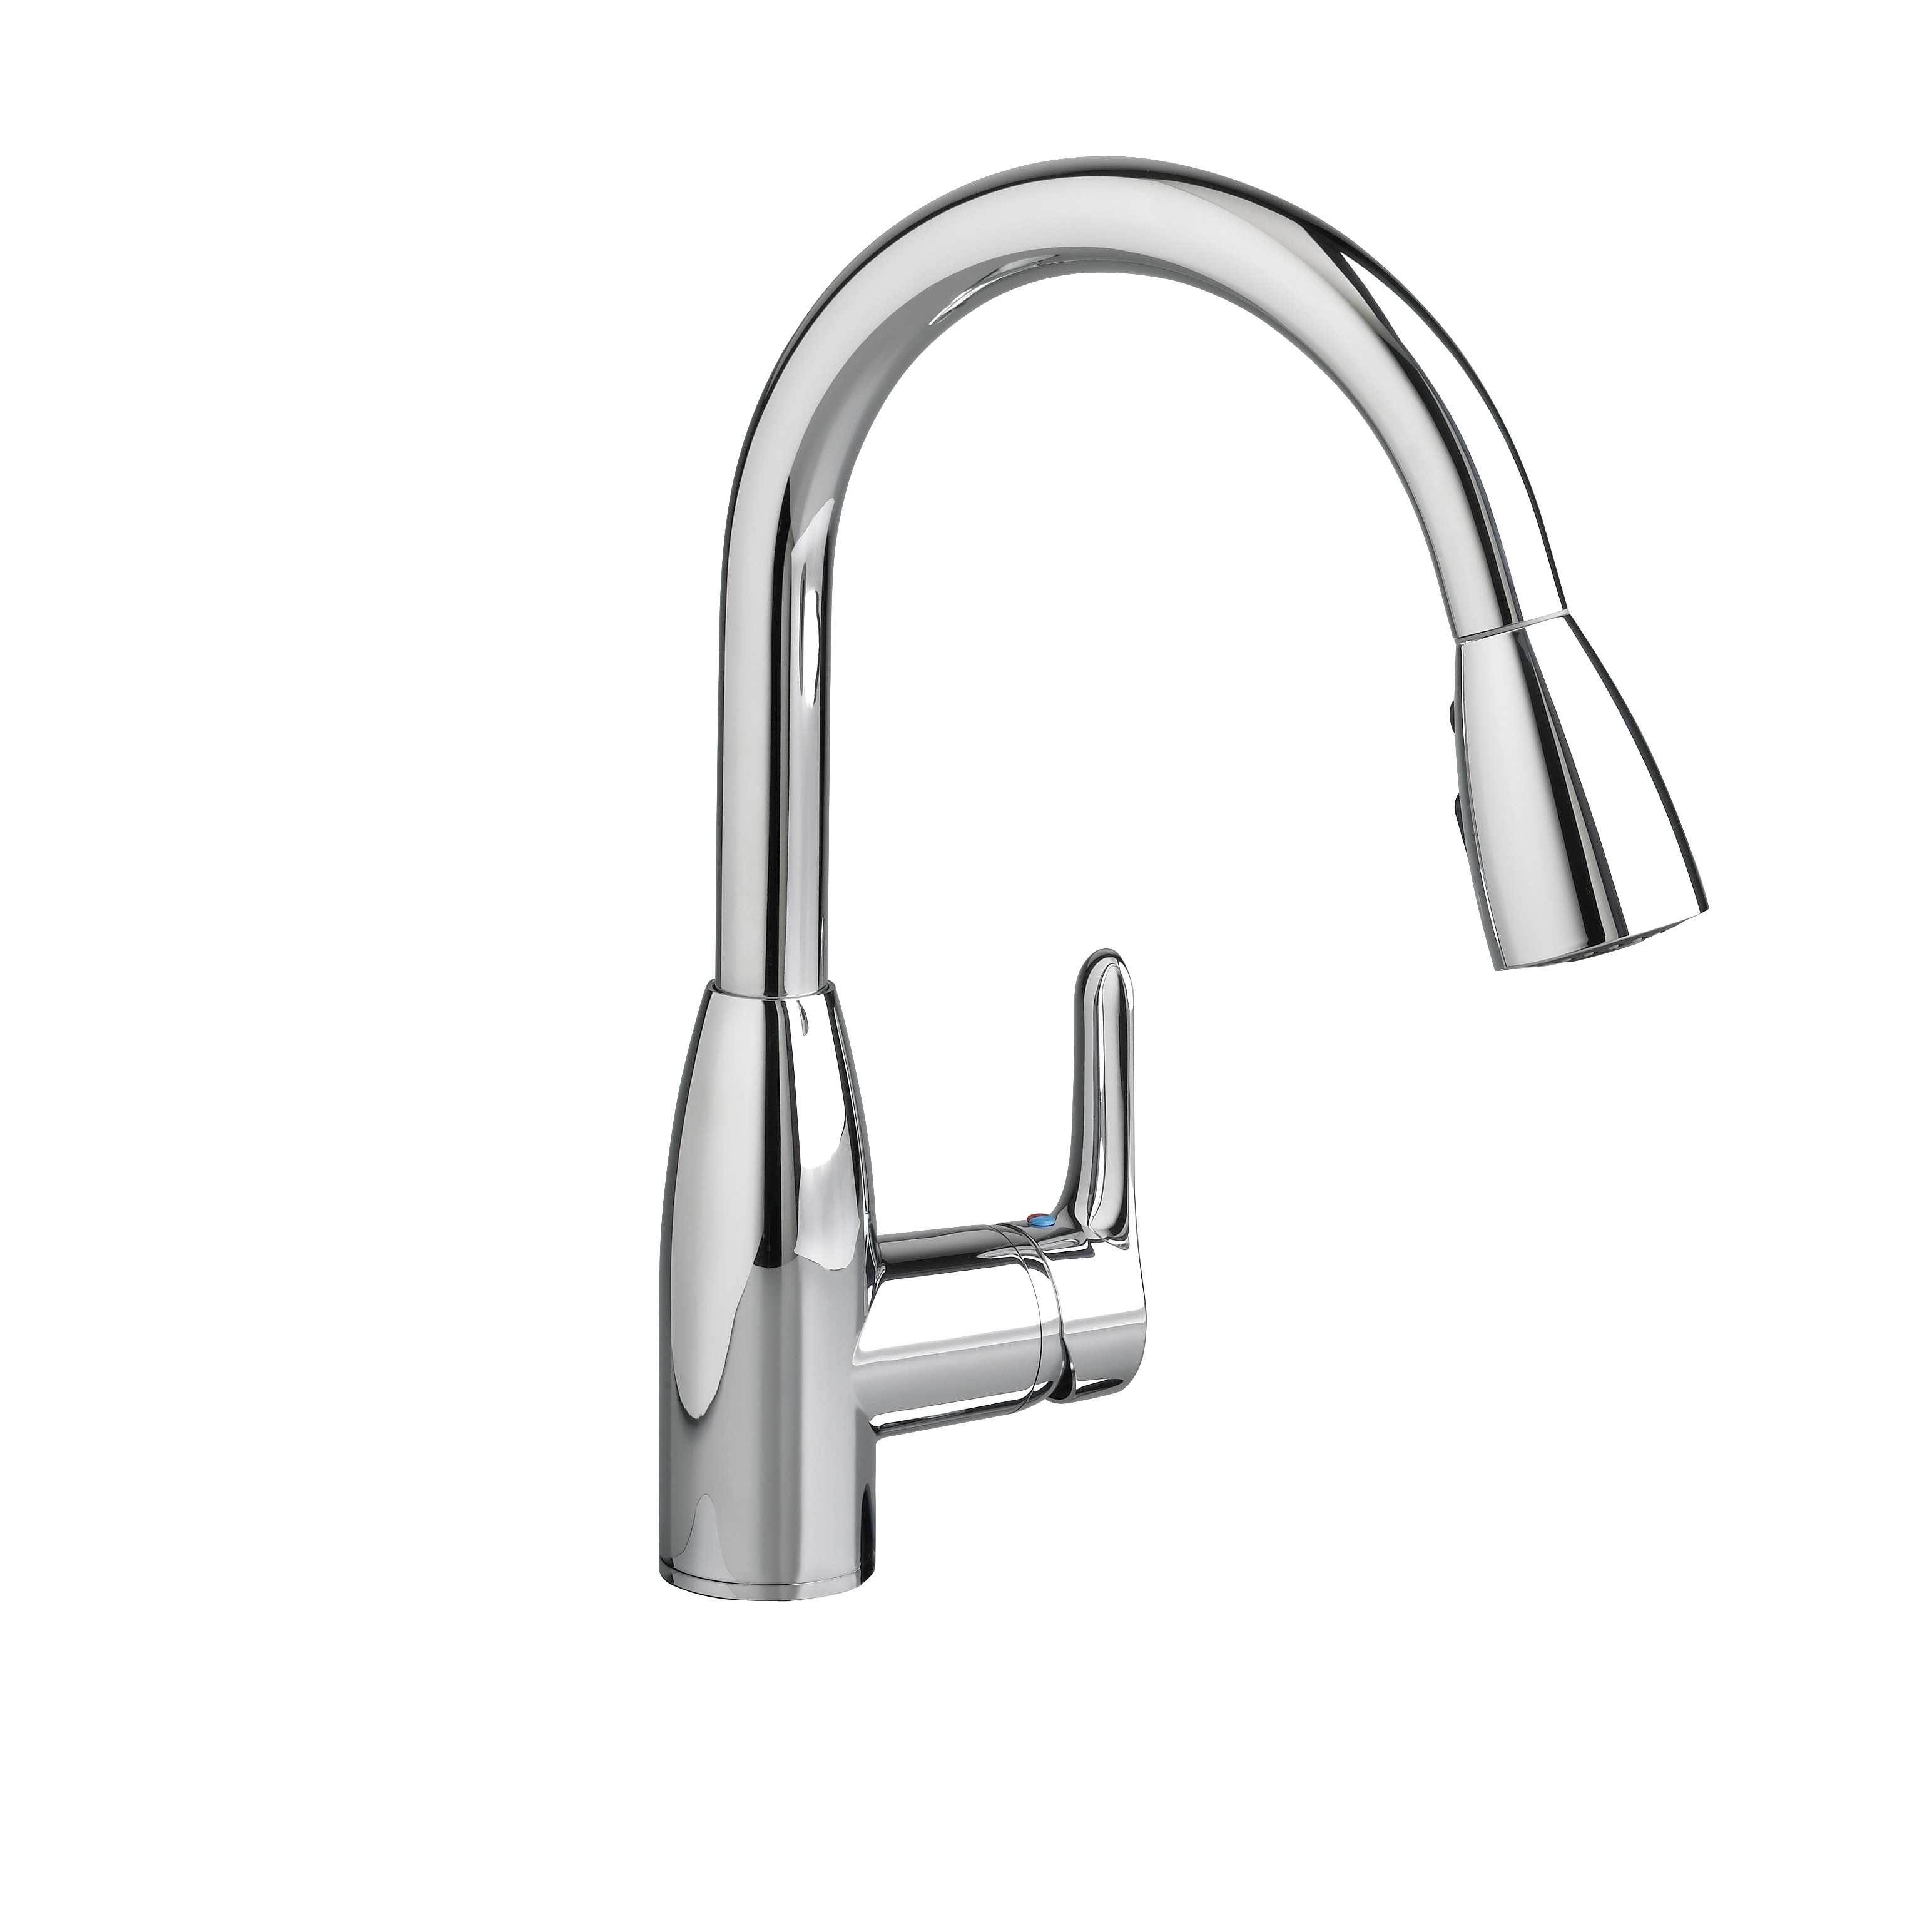 American Standard 4175.300.002 Colony® Soft Single Control Kitchen Faucet With Pull-Down Spray, 2.2 gpm, 1 Faucet Hole, Polished Chrome, 1 Handle, Import